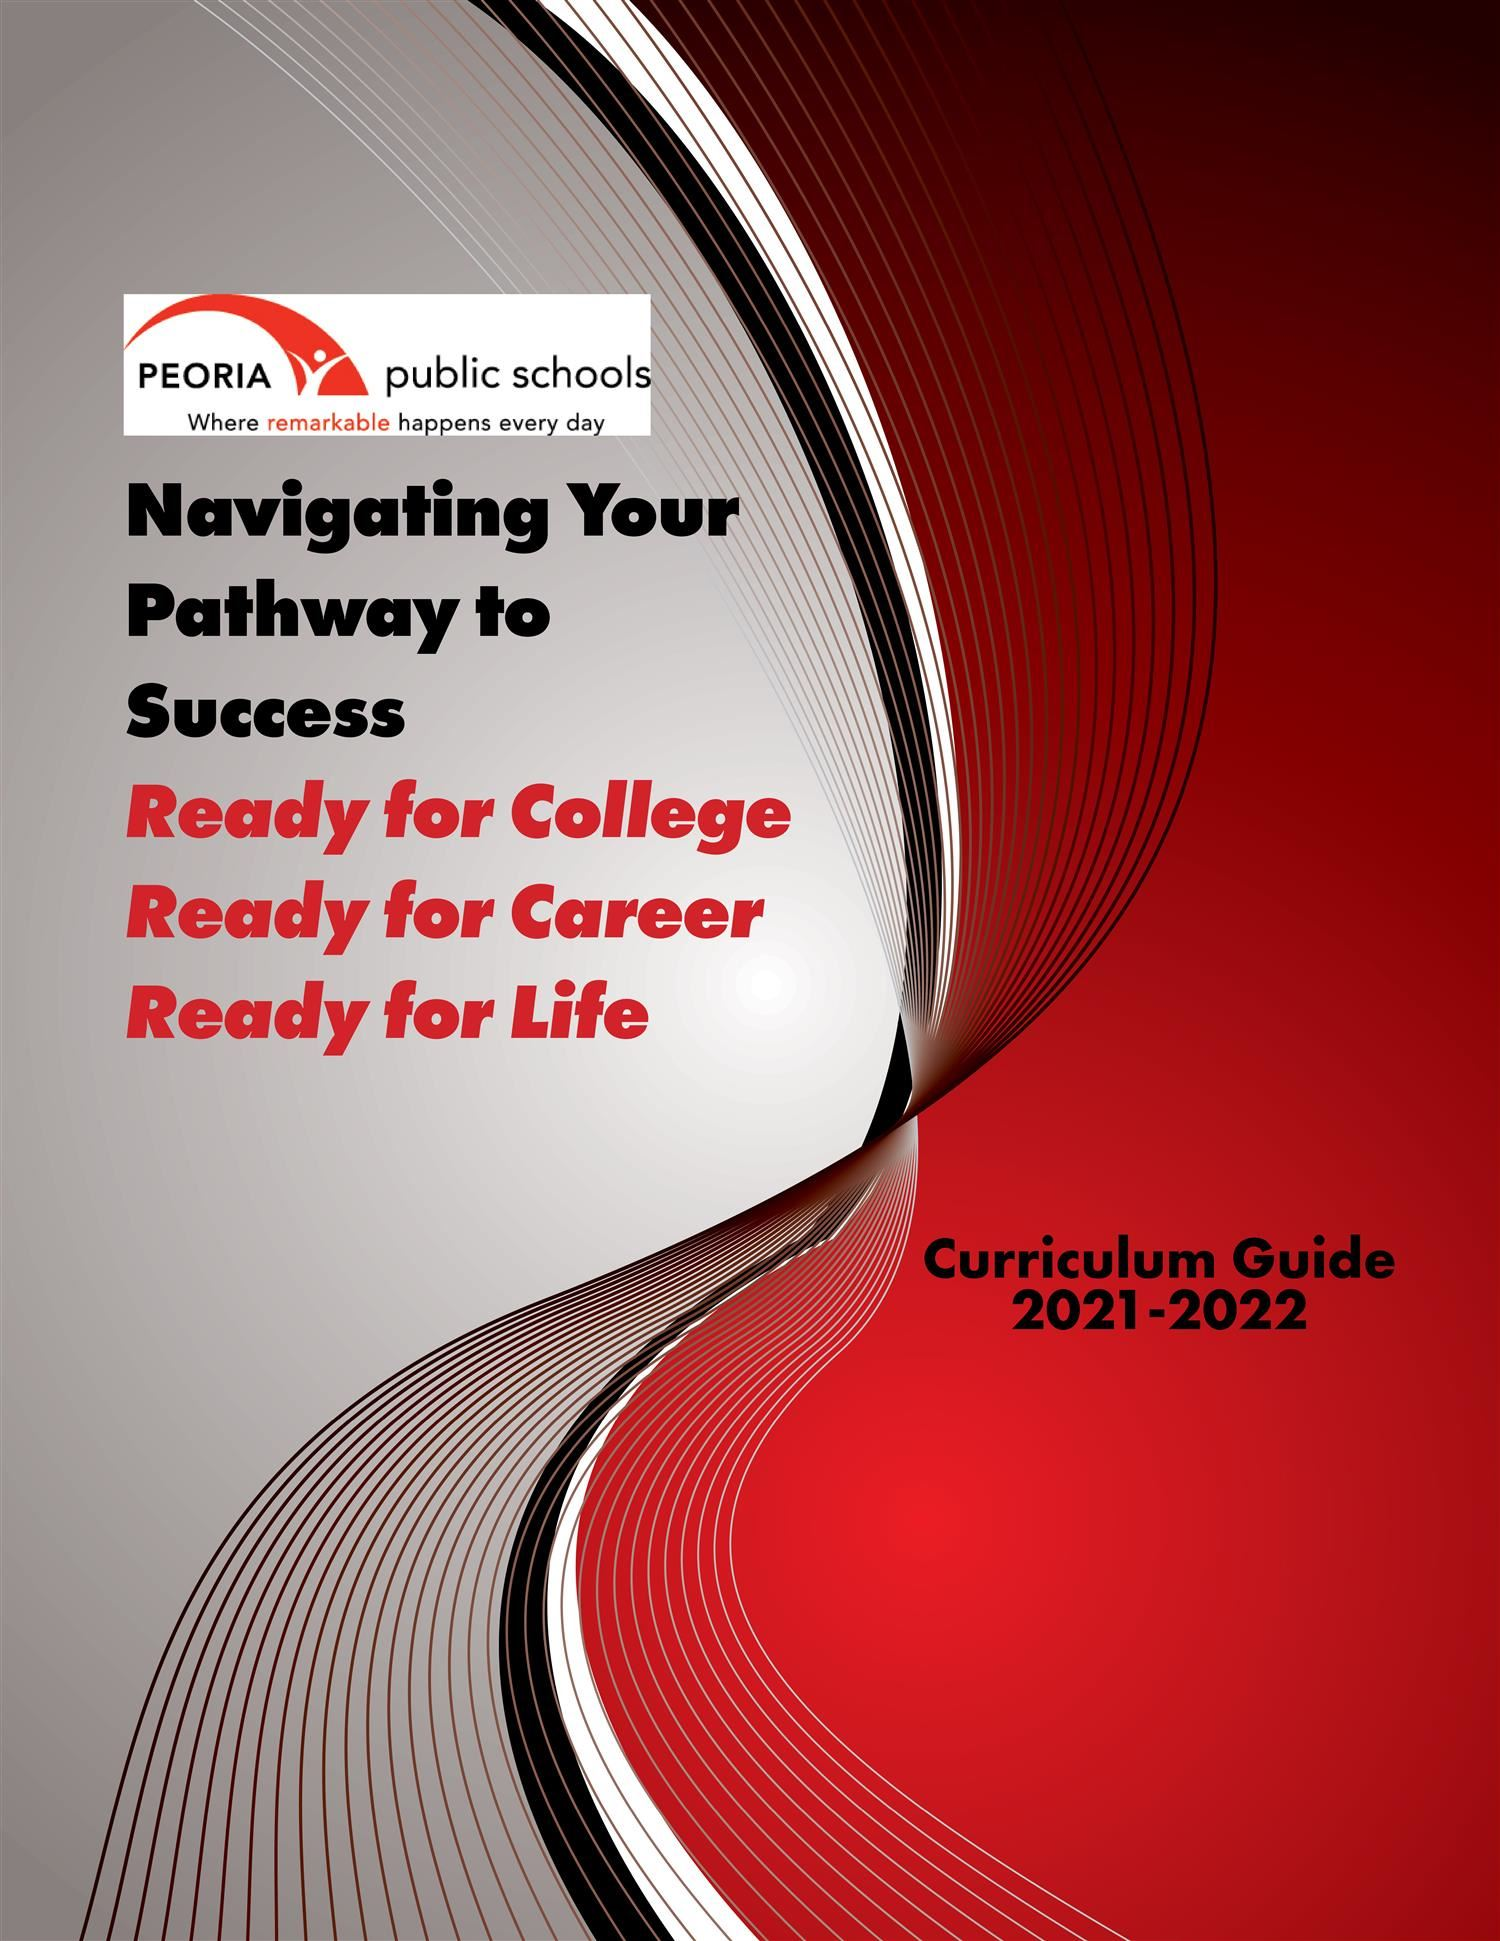 High school curriculum guide 2021-2022